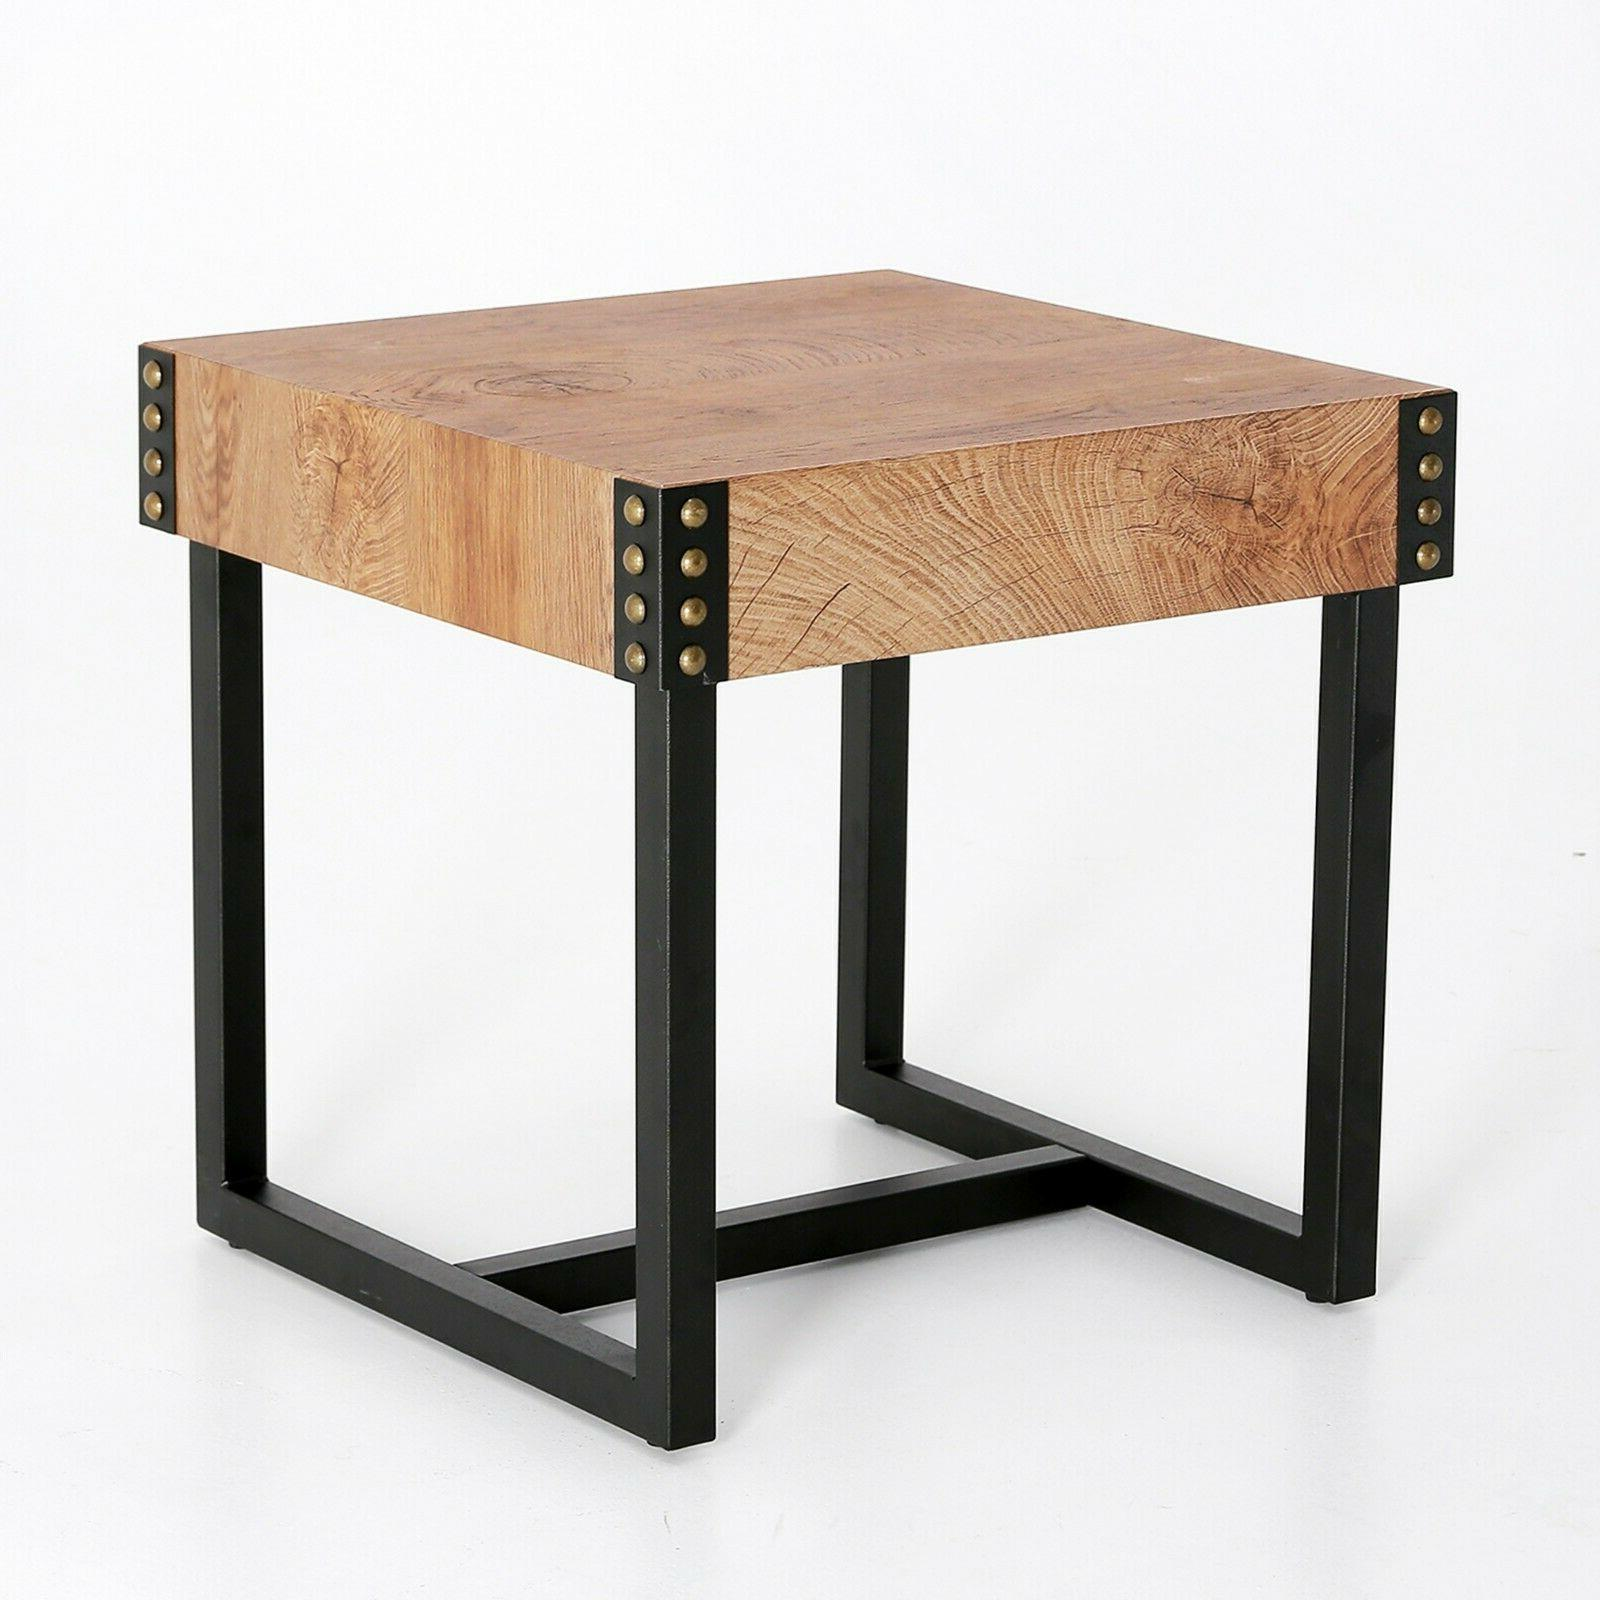 Rustic Night Stand End Table Industrial SideTable for Living